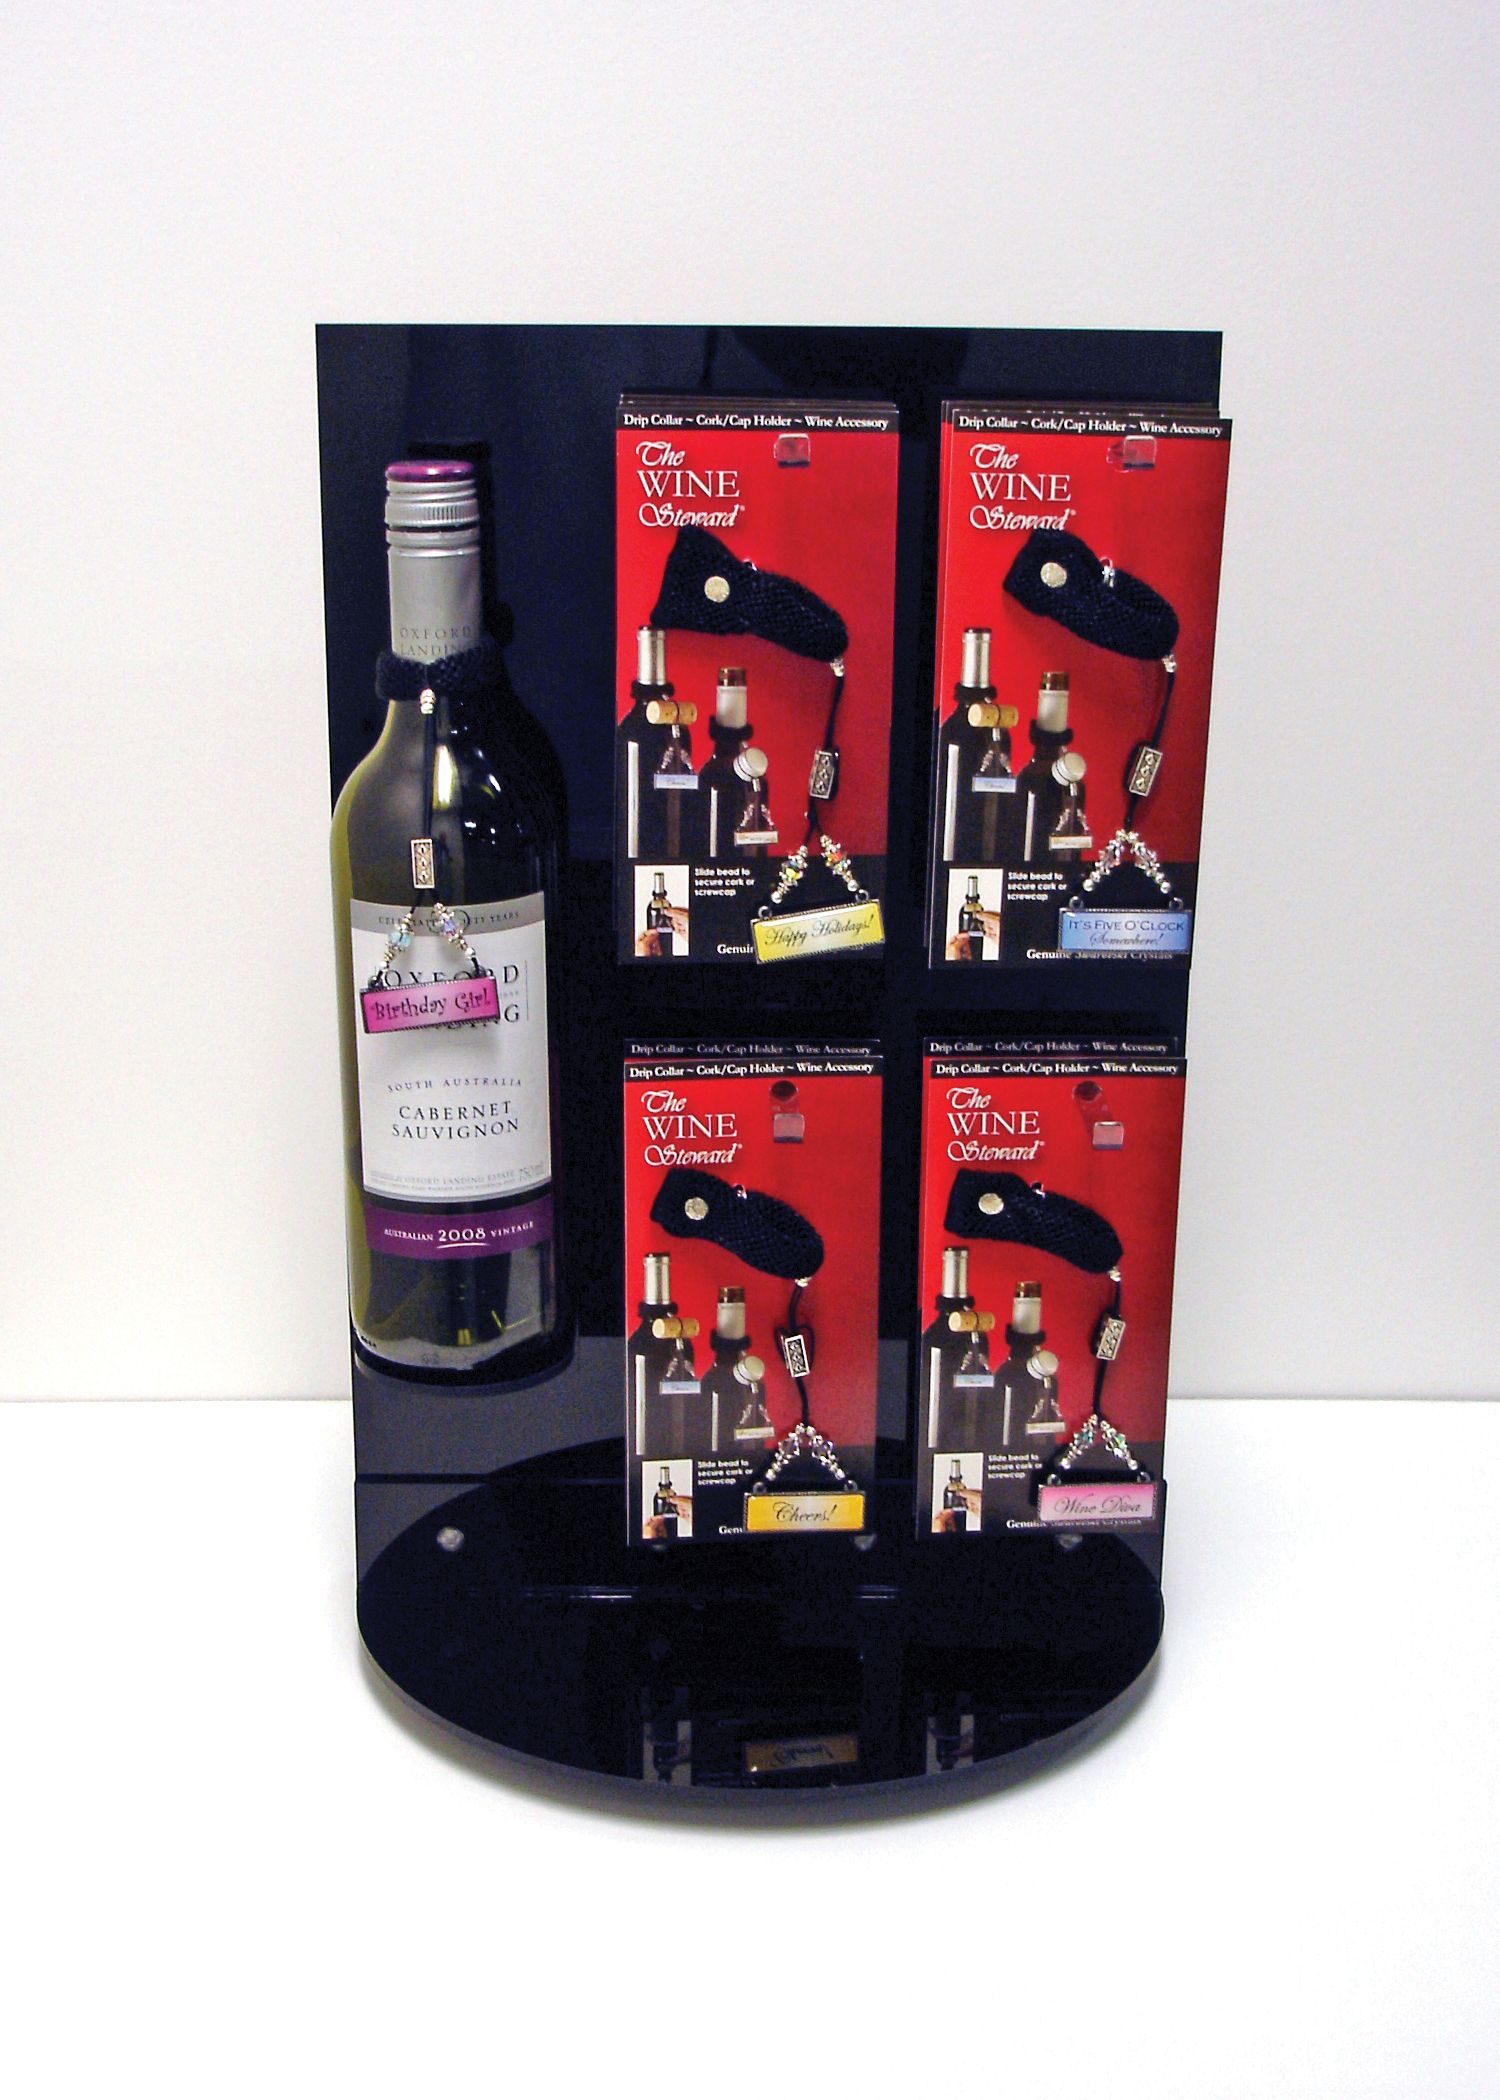 Sharn Enterprises Inc Pop Display Wine Pos Display Acrylic Display Creative Design Made In The Usa The Wi Pop Display Display Design Wine Design